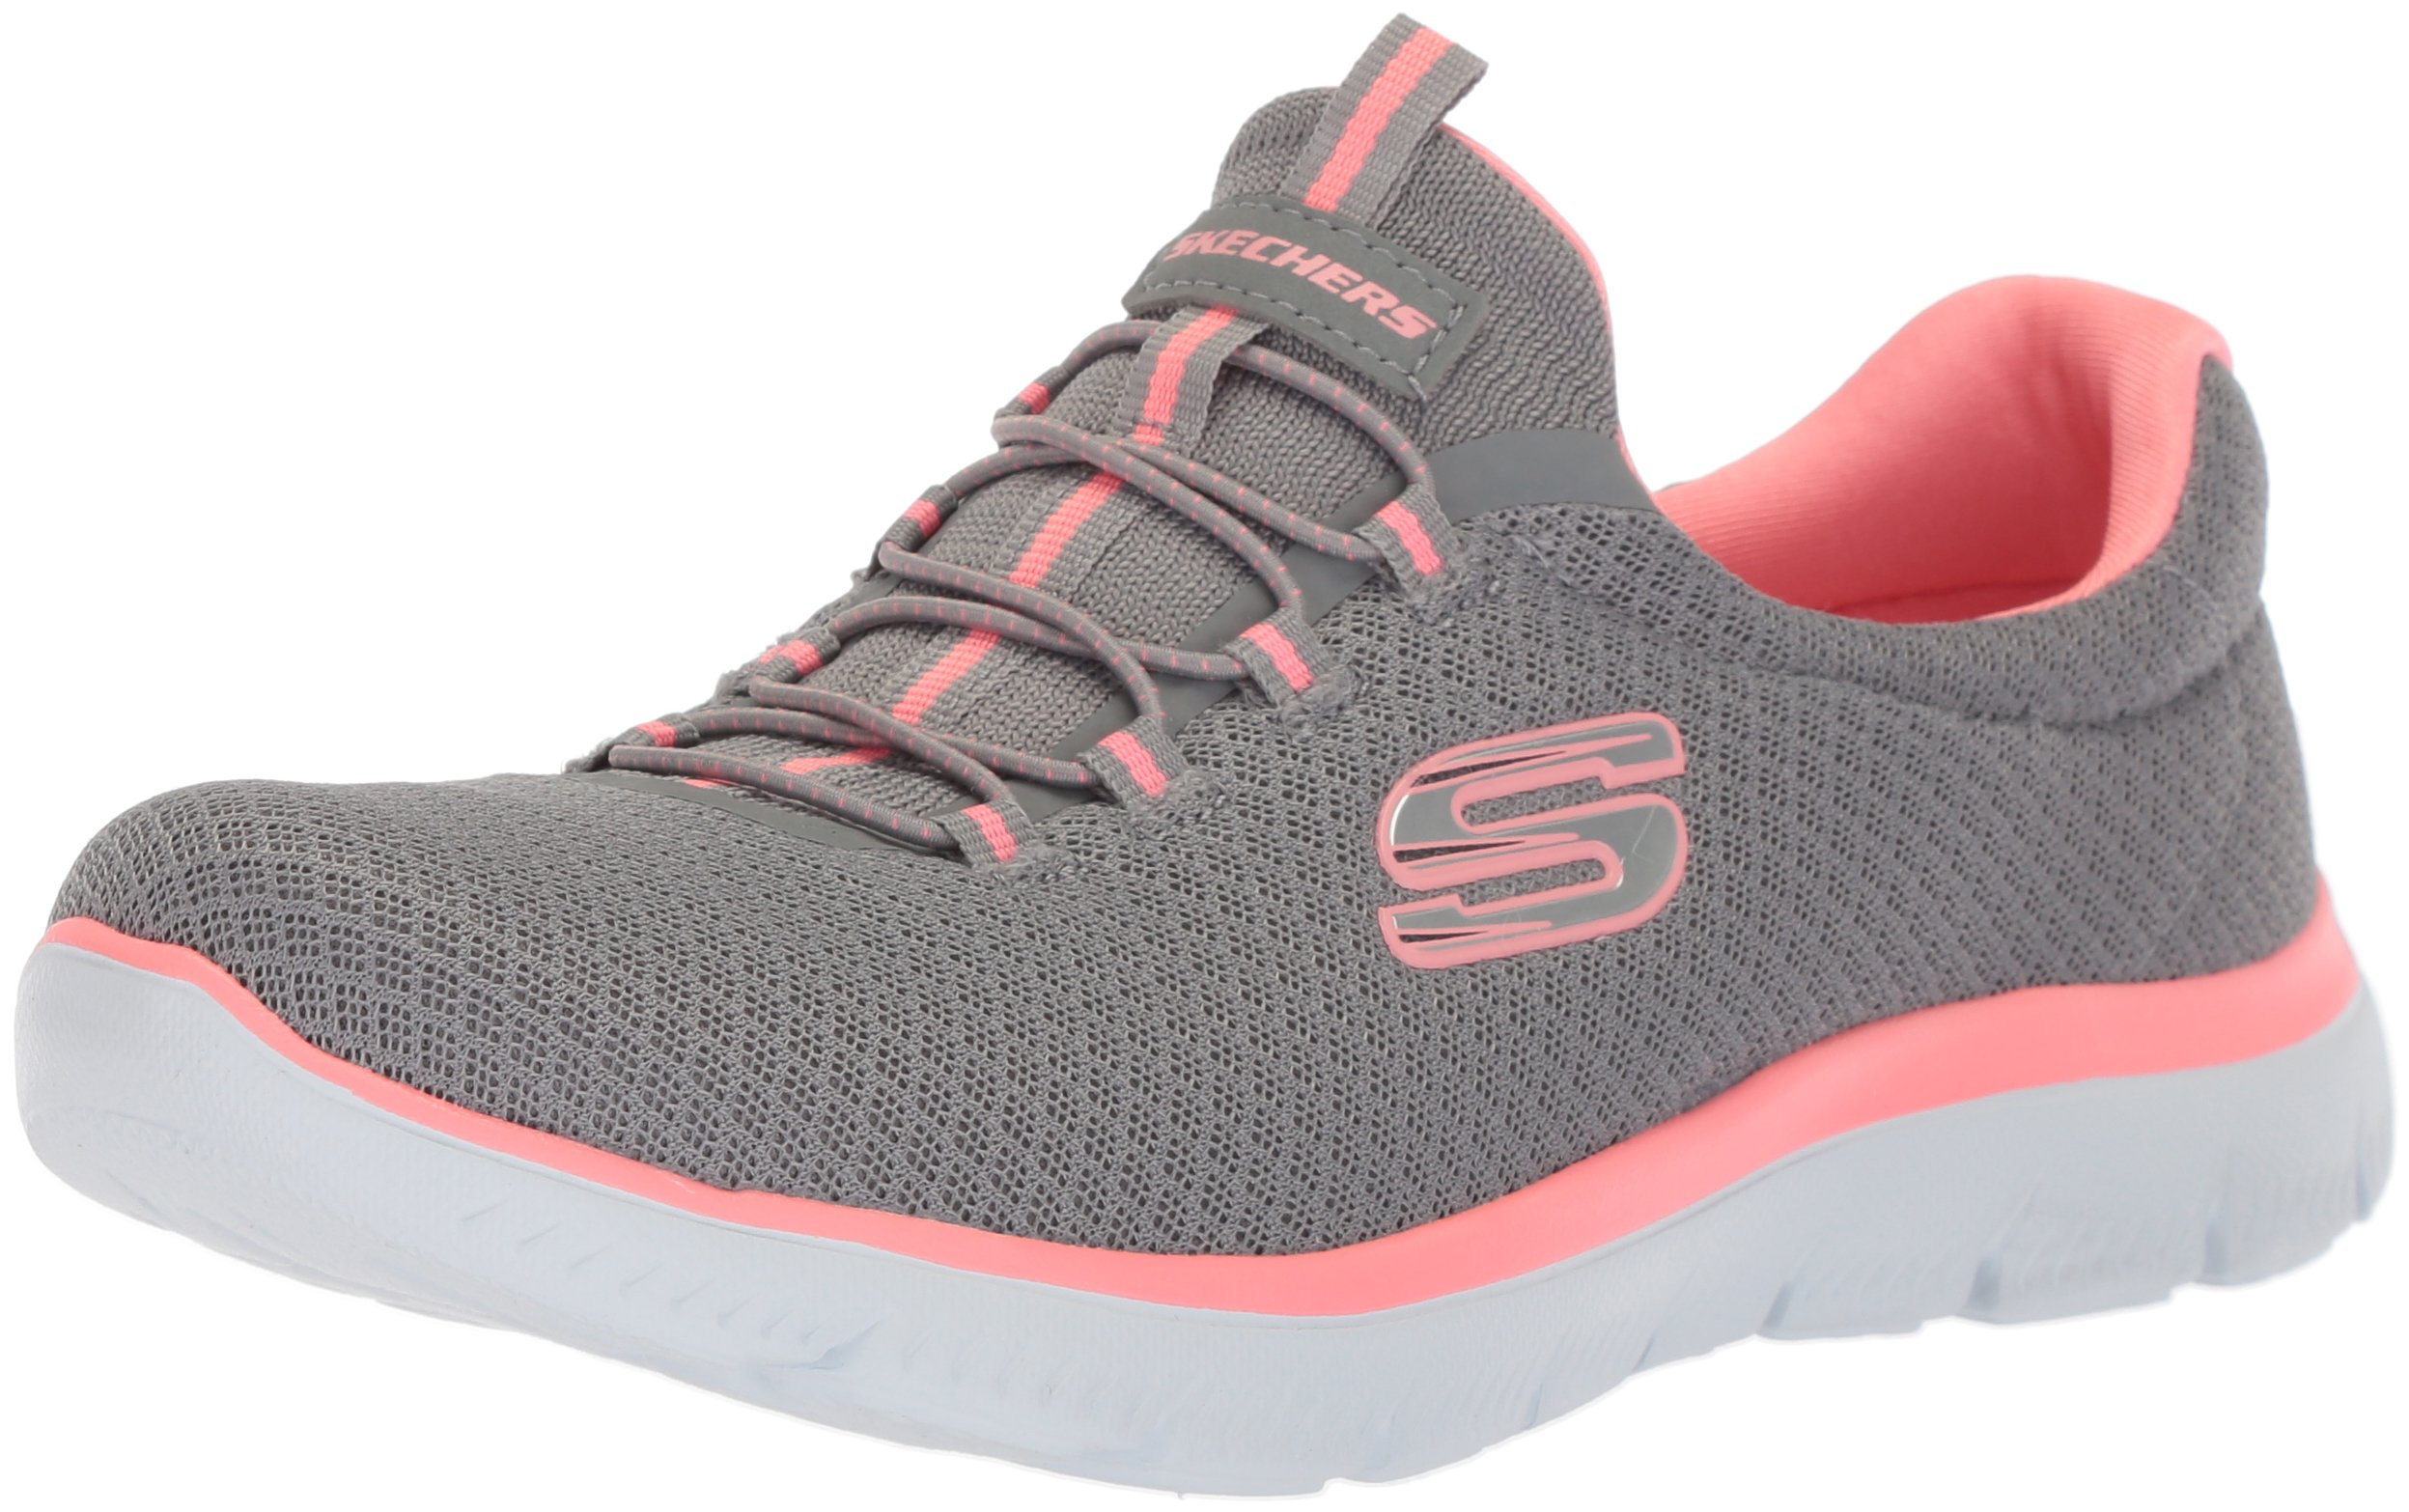 Skechers Sport Women's Summits Sneaker,grey/pink,9 W US